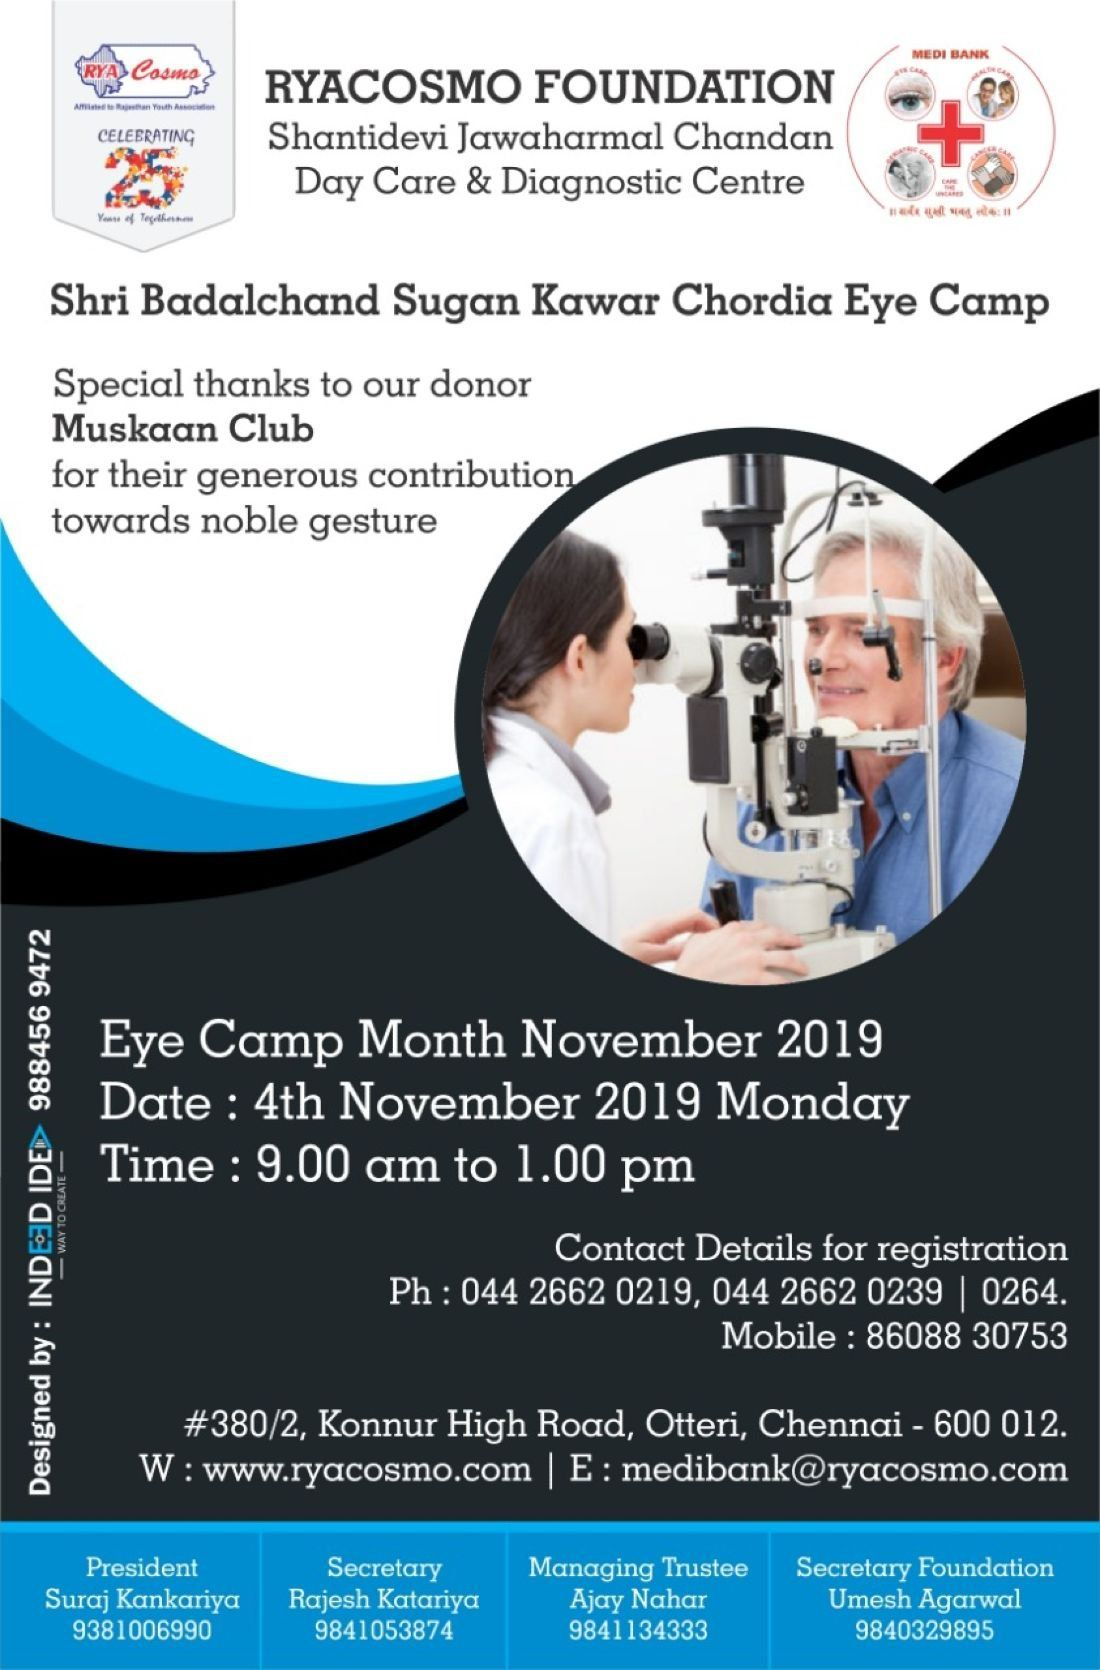 Sri Badalchand Sugankawar Chordia Eye Camp for the Month of November  RYACOSMO FOUNDATION